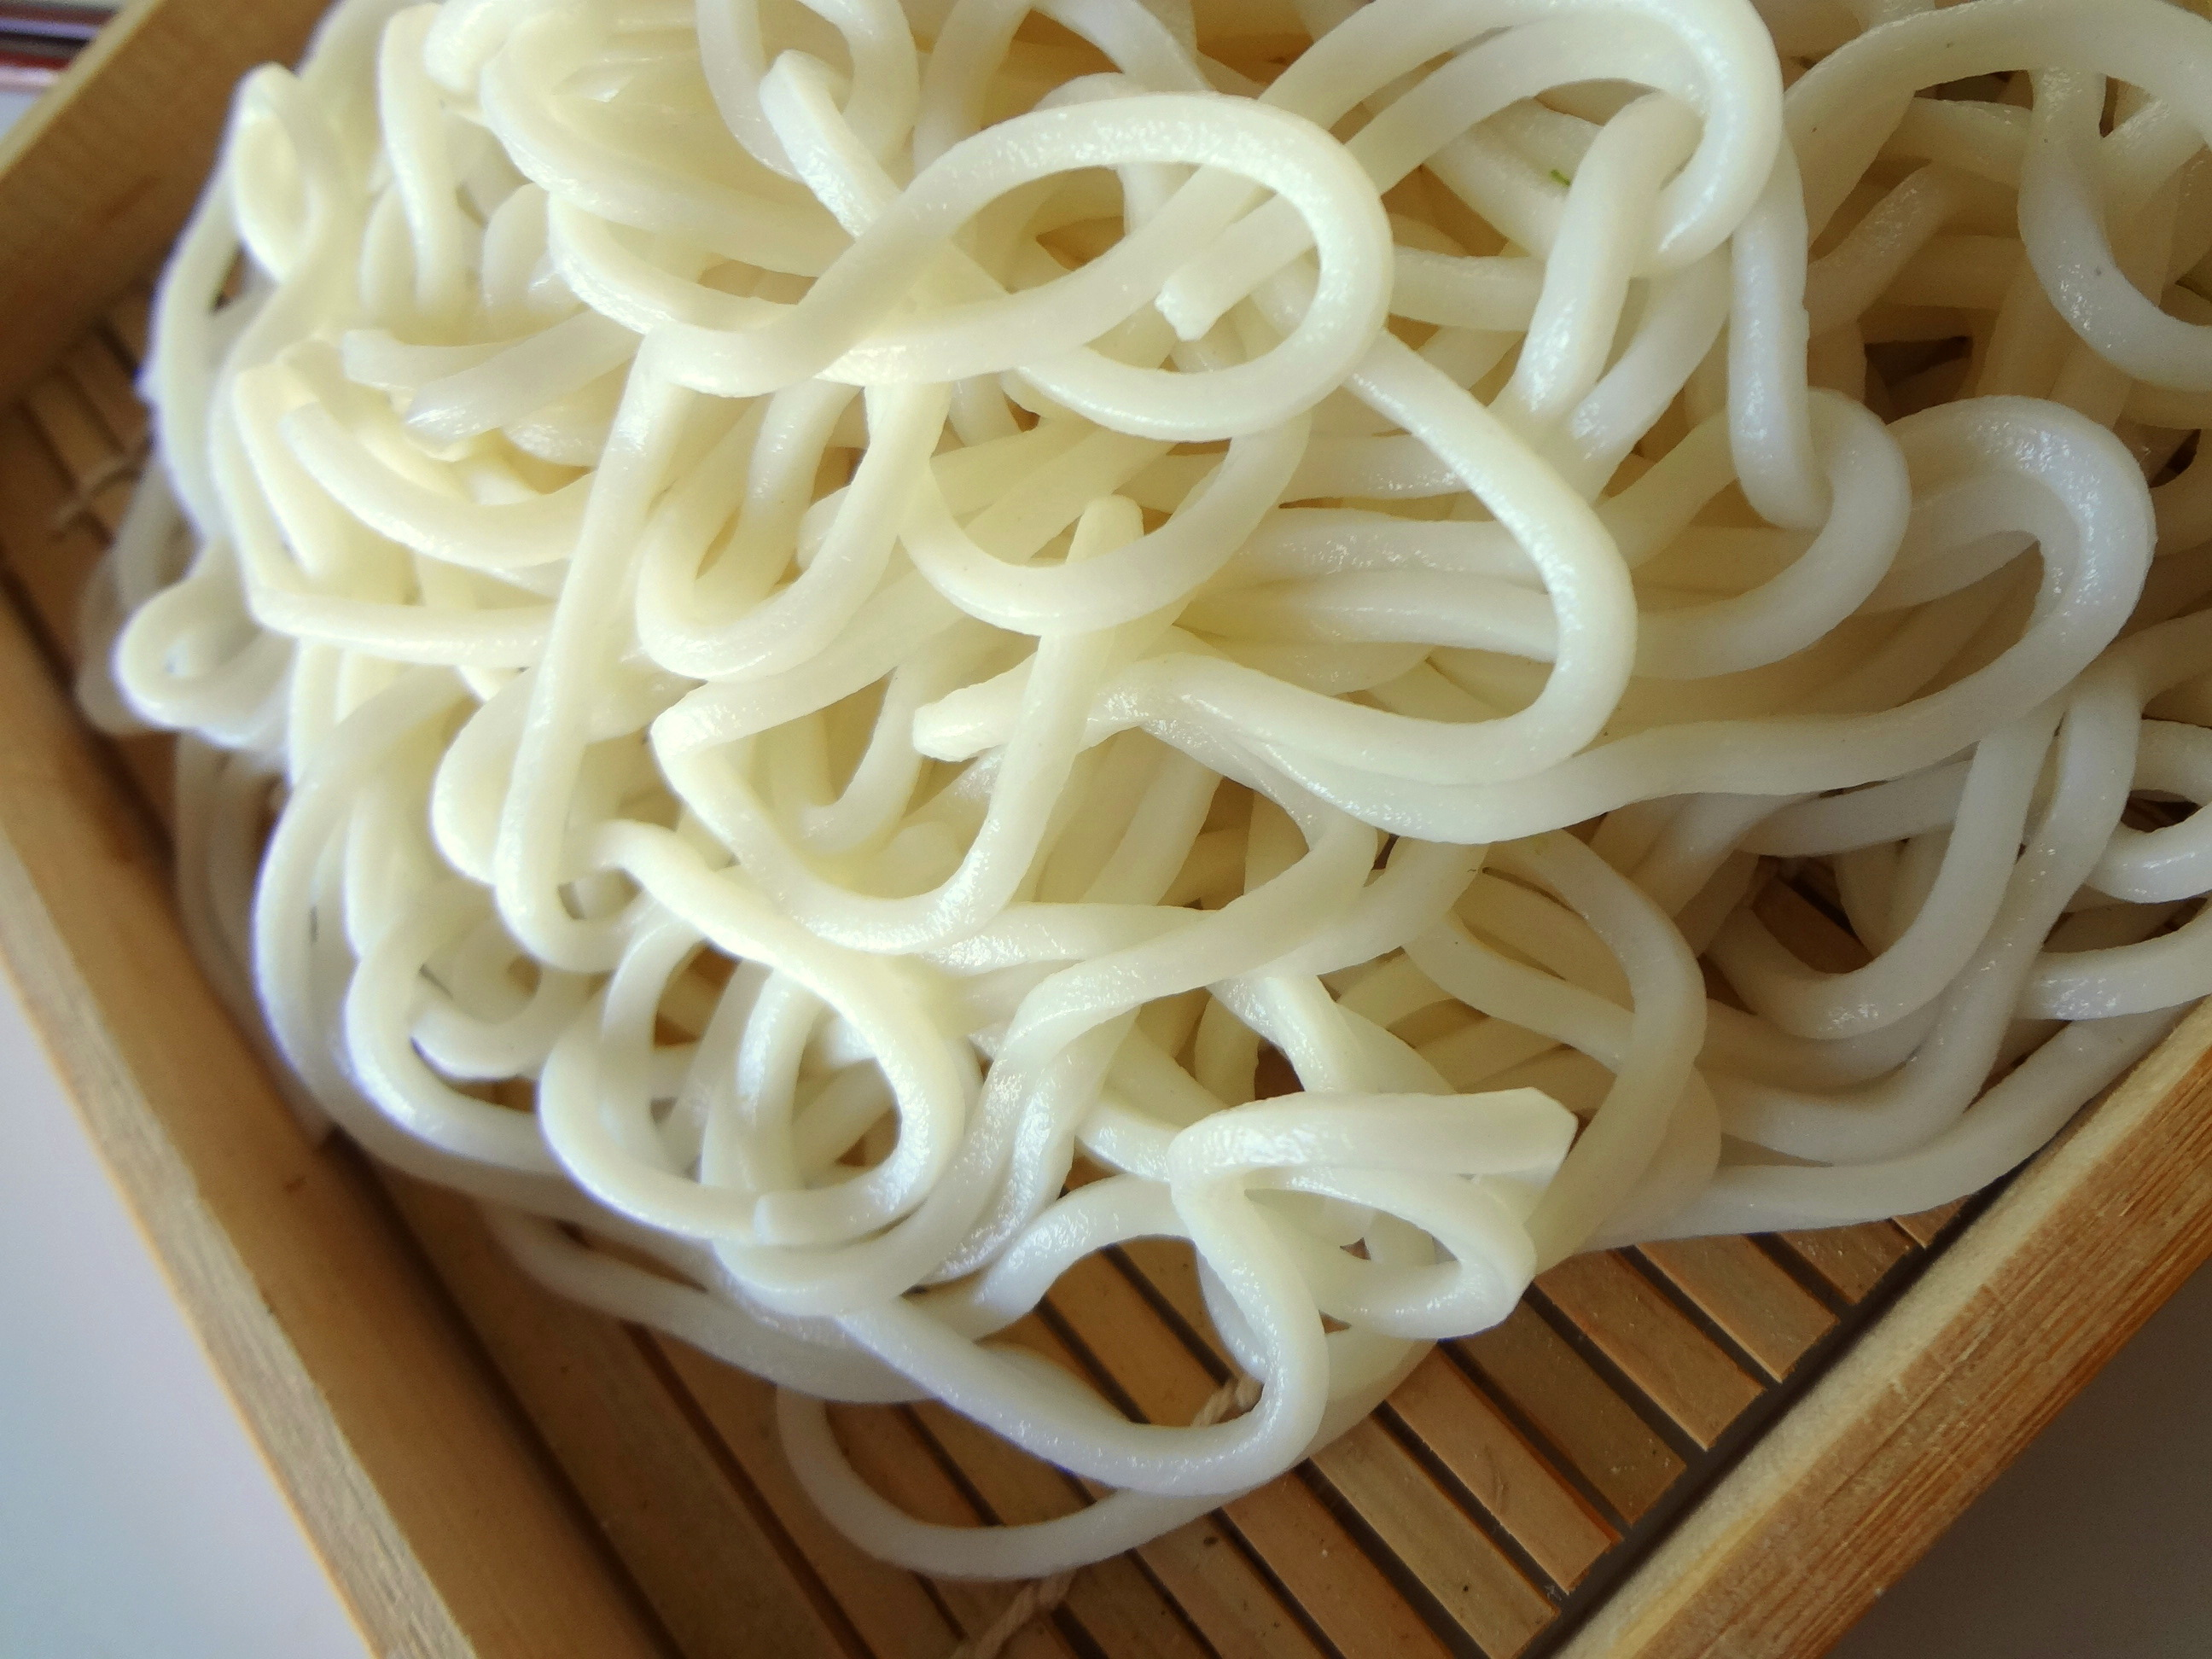 hosoi udon , thin udon noodles. They are said to be Kyoto style udon ...